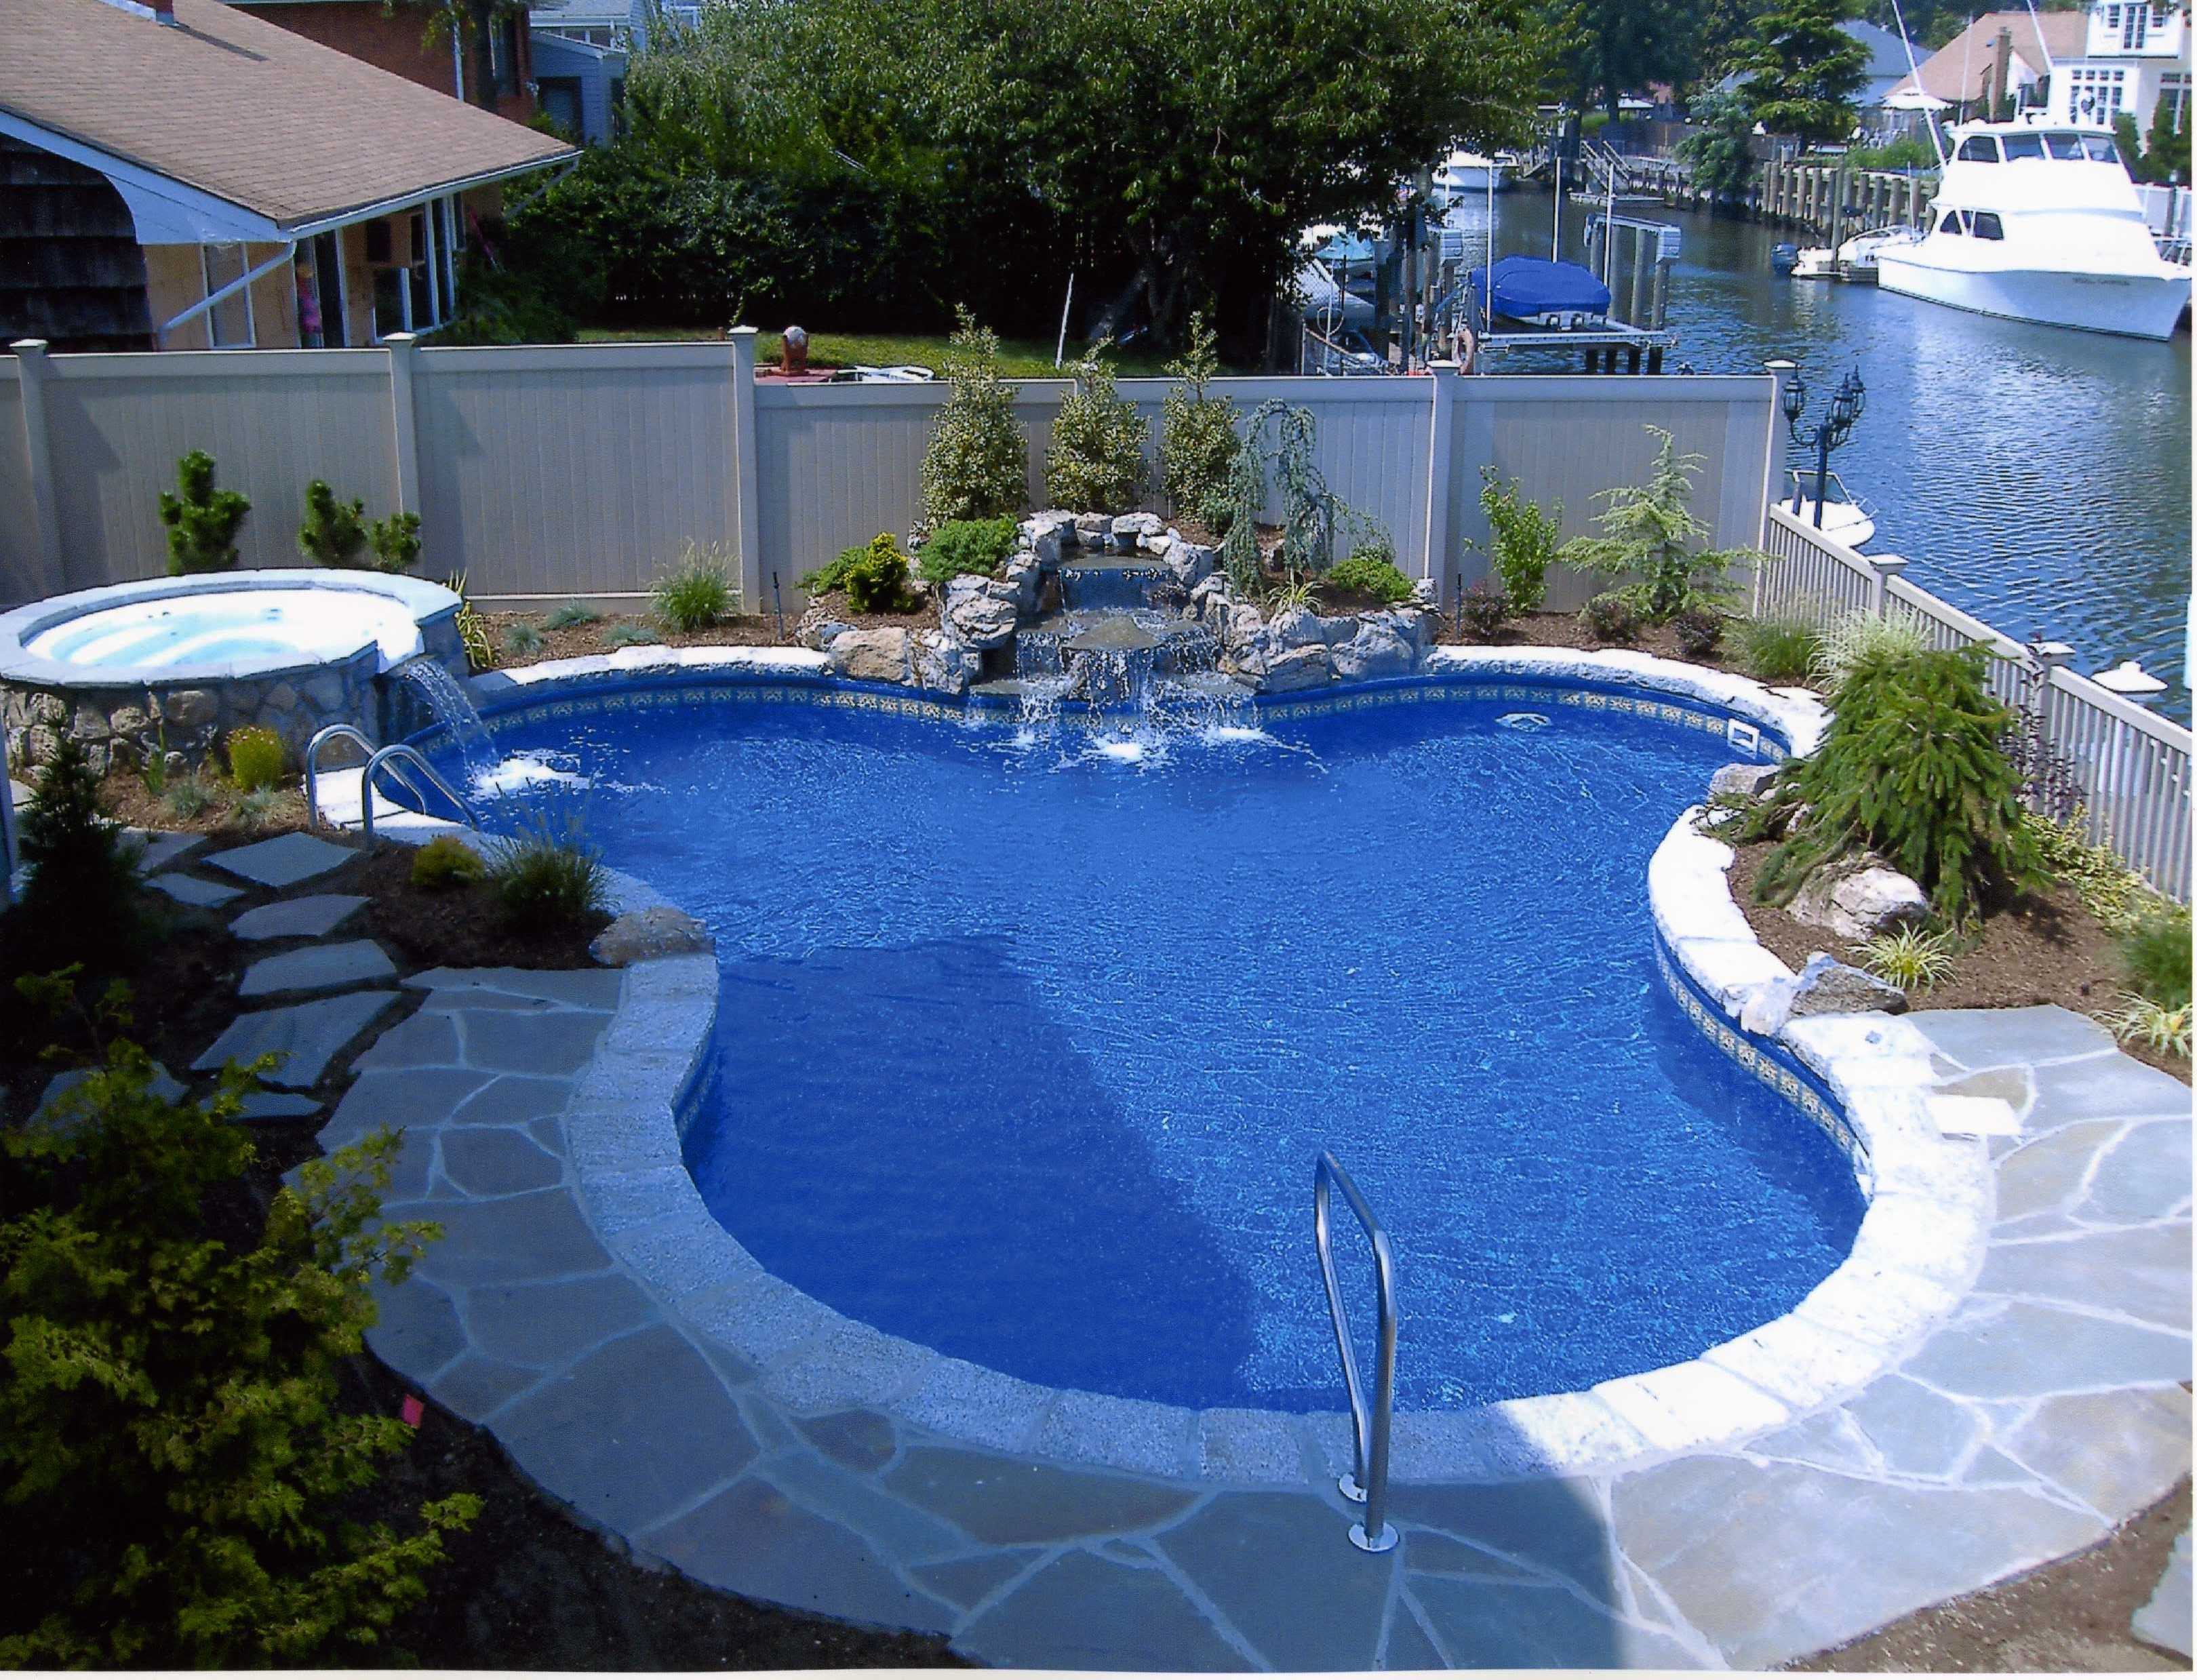 Backyard Landscaping IdeasSwimming Pool Design  Homesthetics  Inspiring ideas for your home